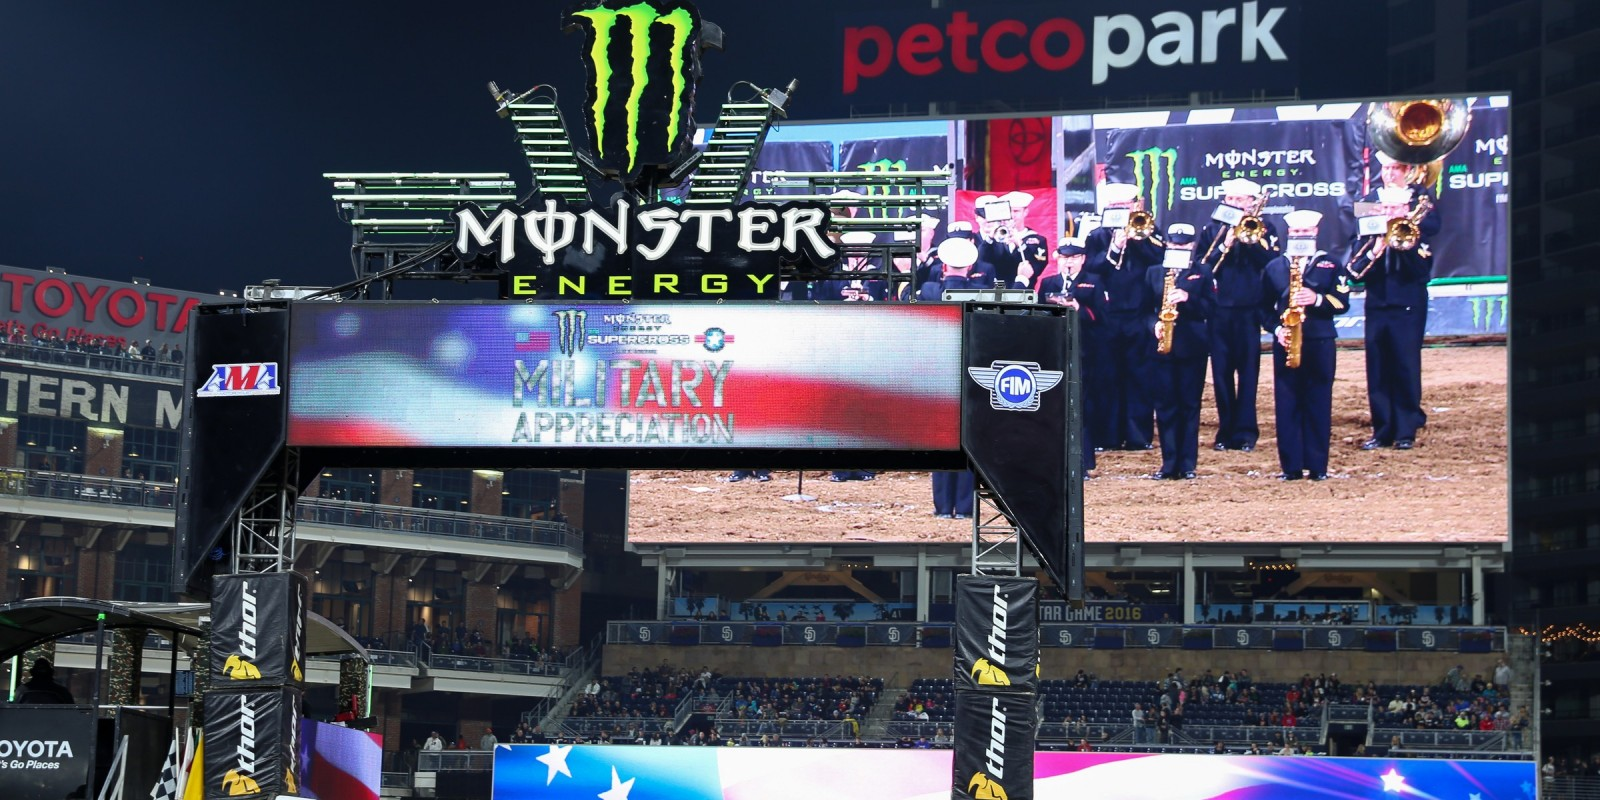 The U.S. Navy Band plays on the big screen as troops line the field.